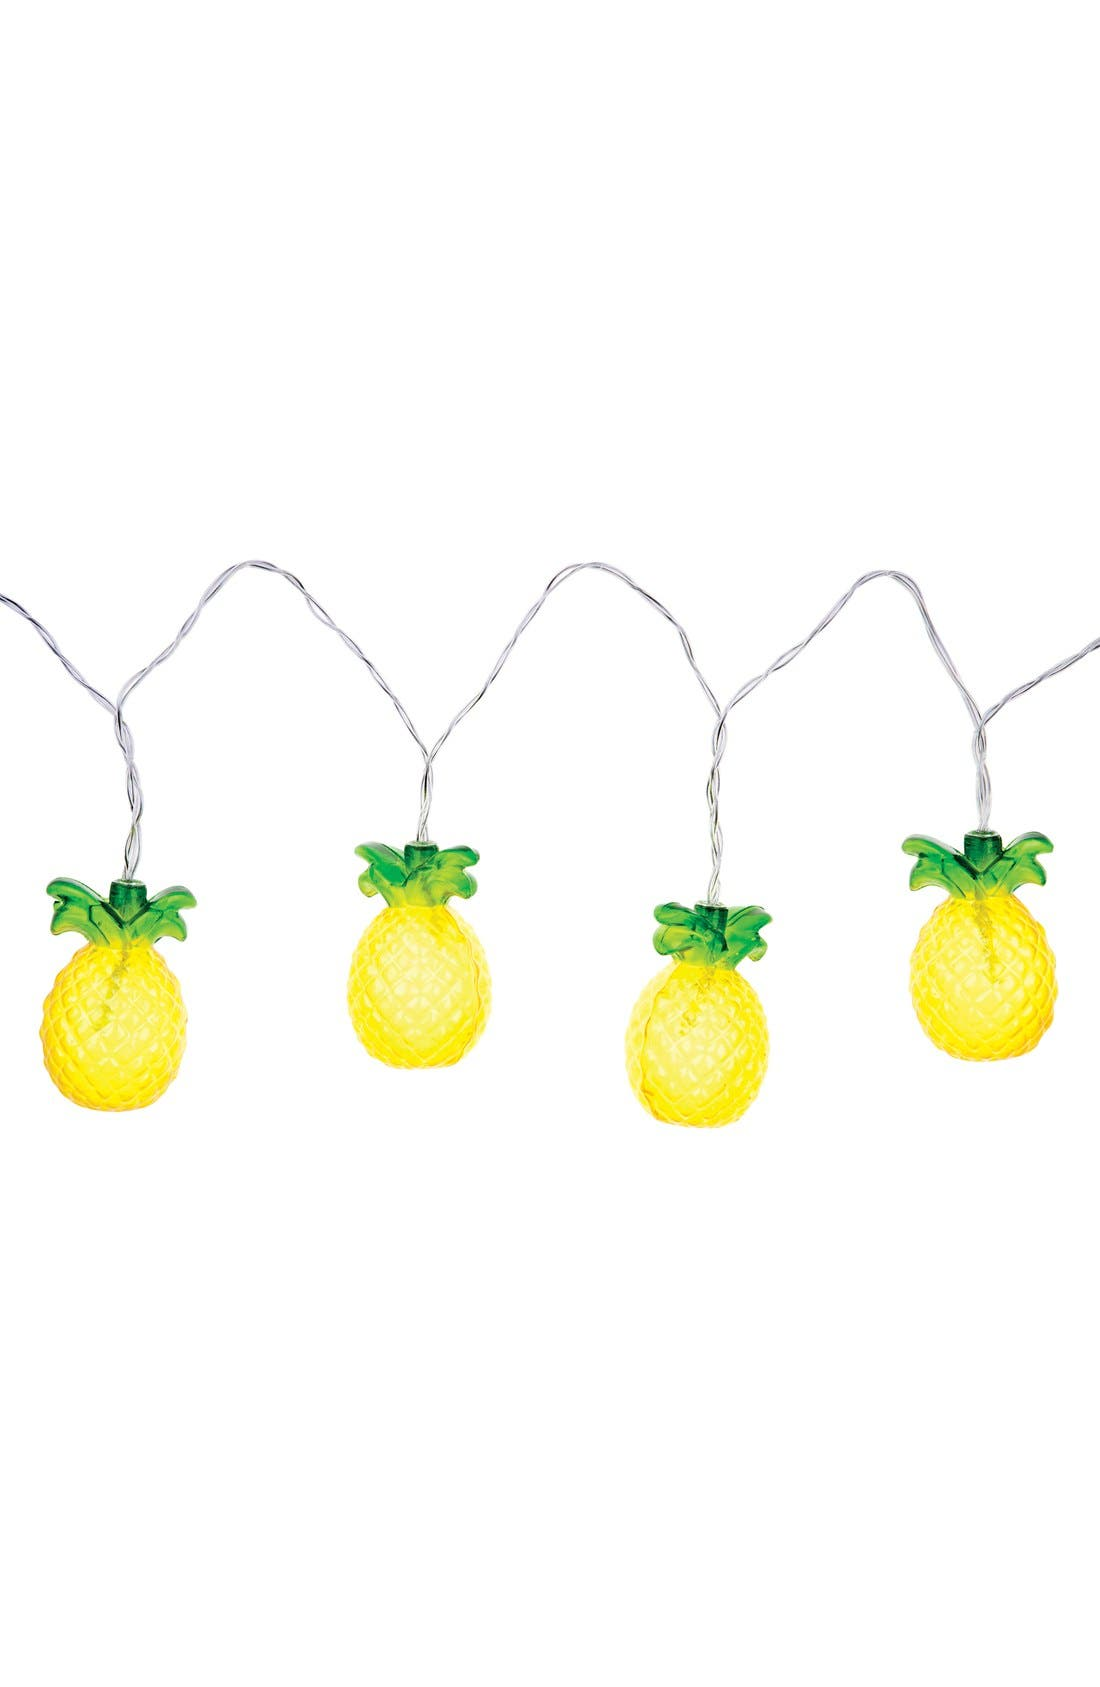 Alternate Image 1 Selected - Sunnylife Pineapple String Lights